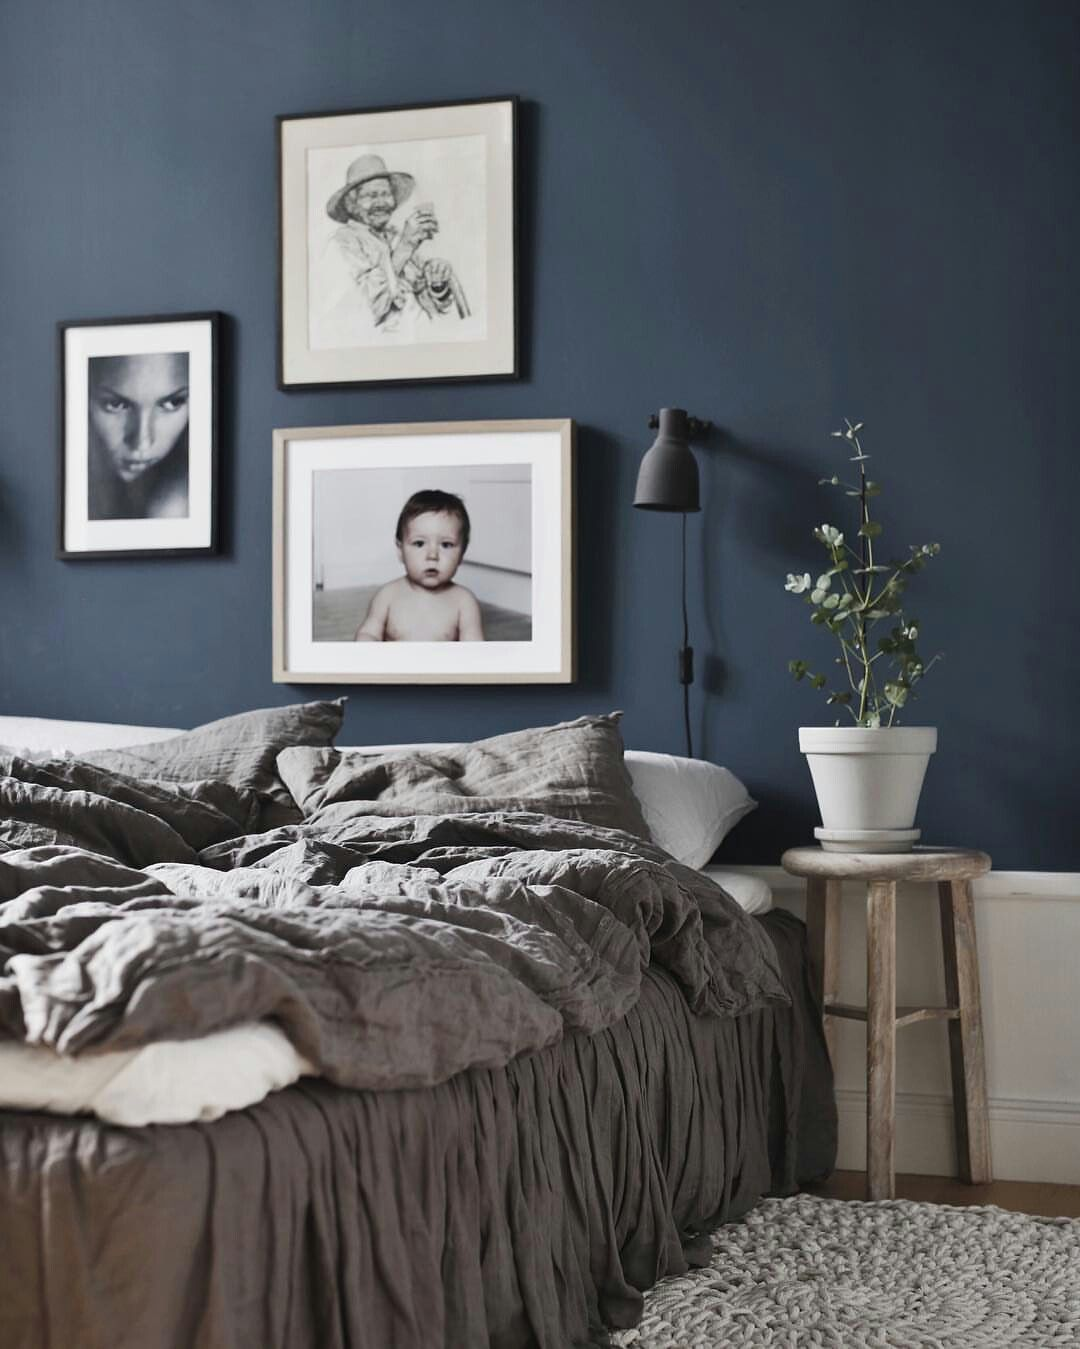 Dark Blue Bedroom Wall Dark Blue Bedroom Walls Blue Bedroom